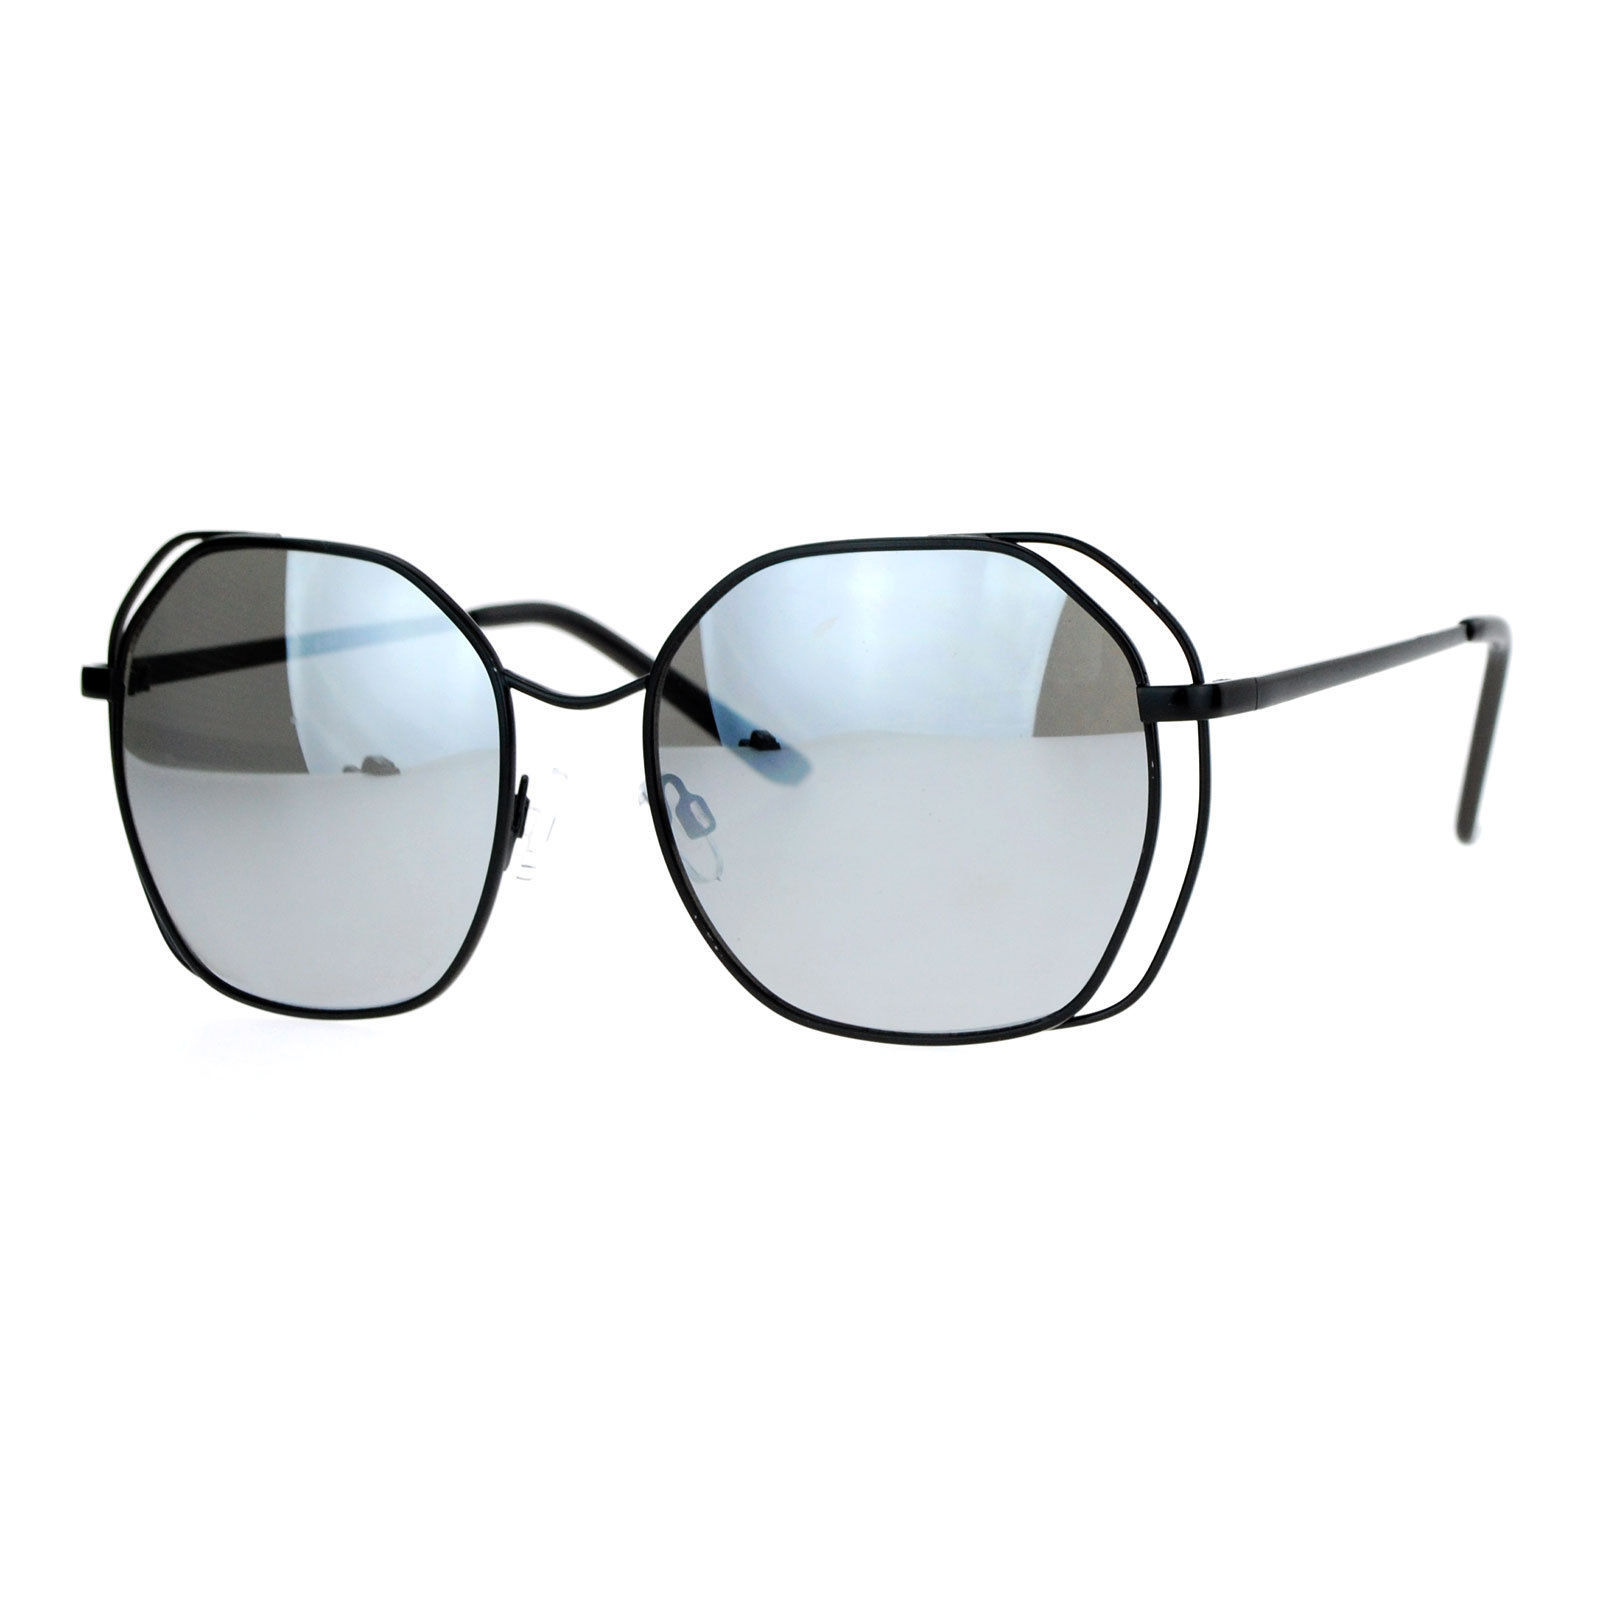 Chic Designer Fashion Sunglasses Womens Square Metal Frame UV 400